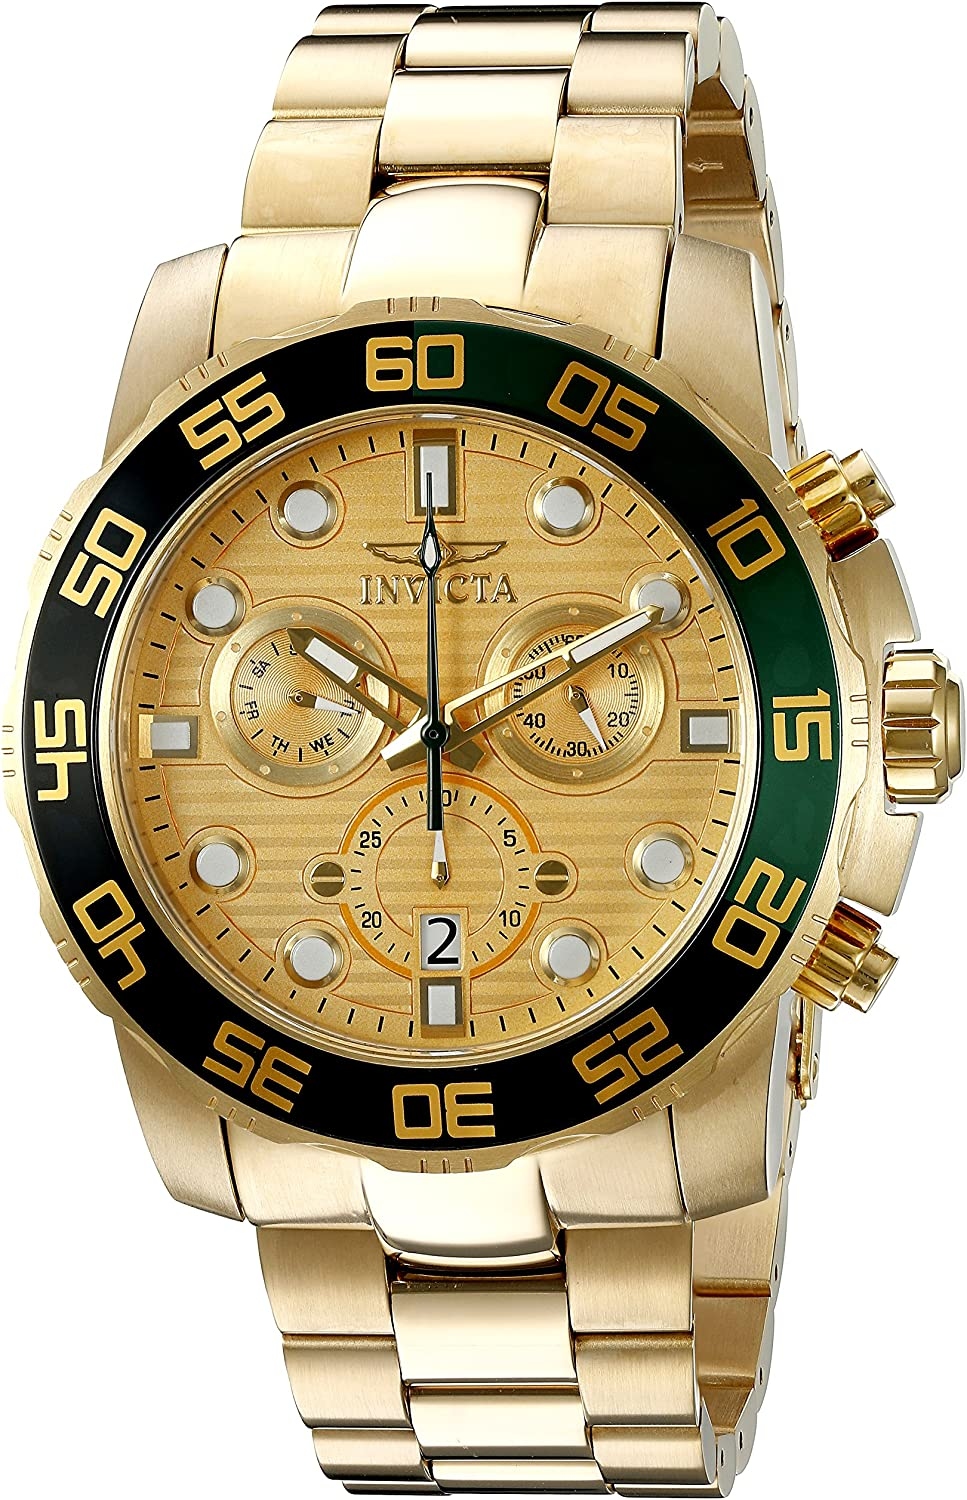 Invicta Men s 21554 Pro Diver Analog Display Swiss Quartz Gold-ToneWatch